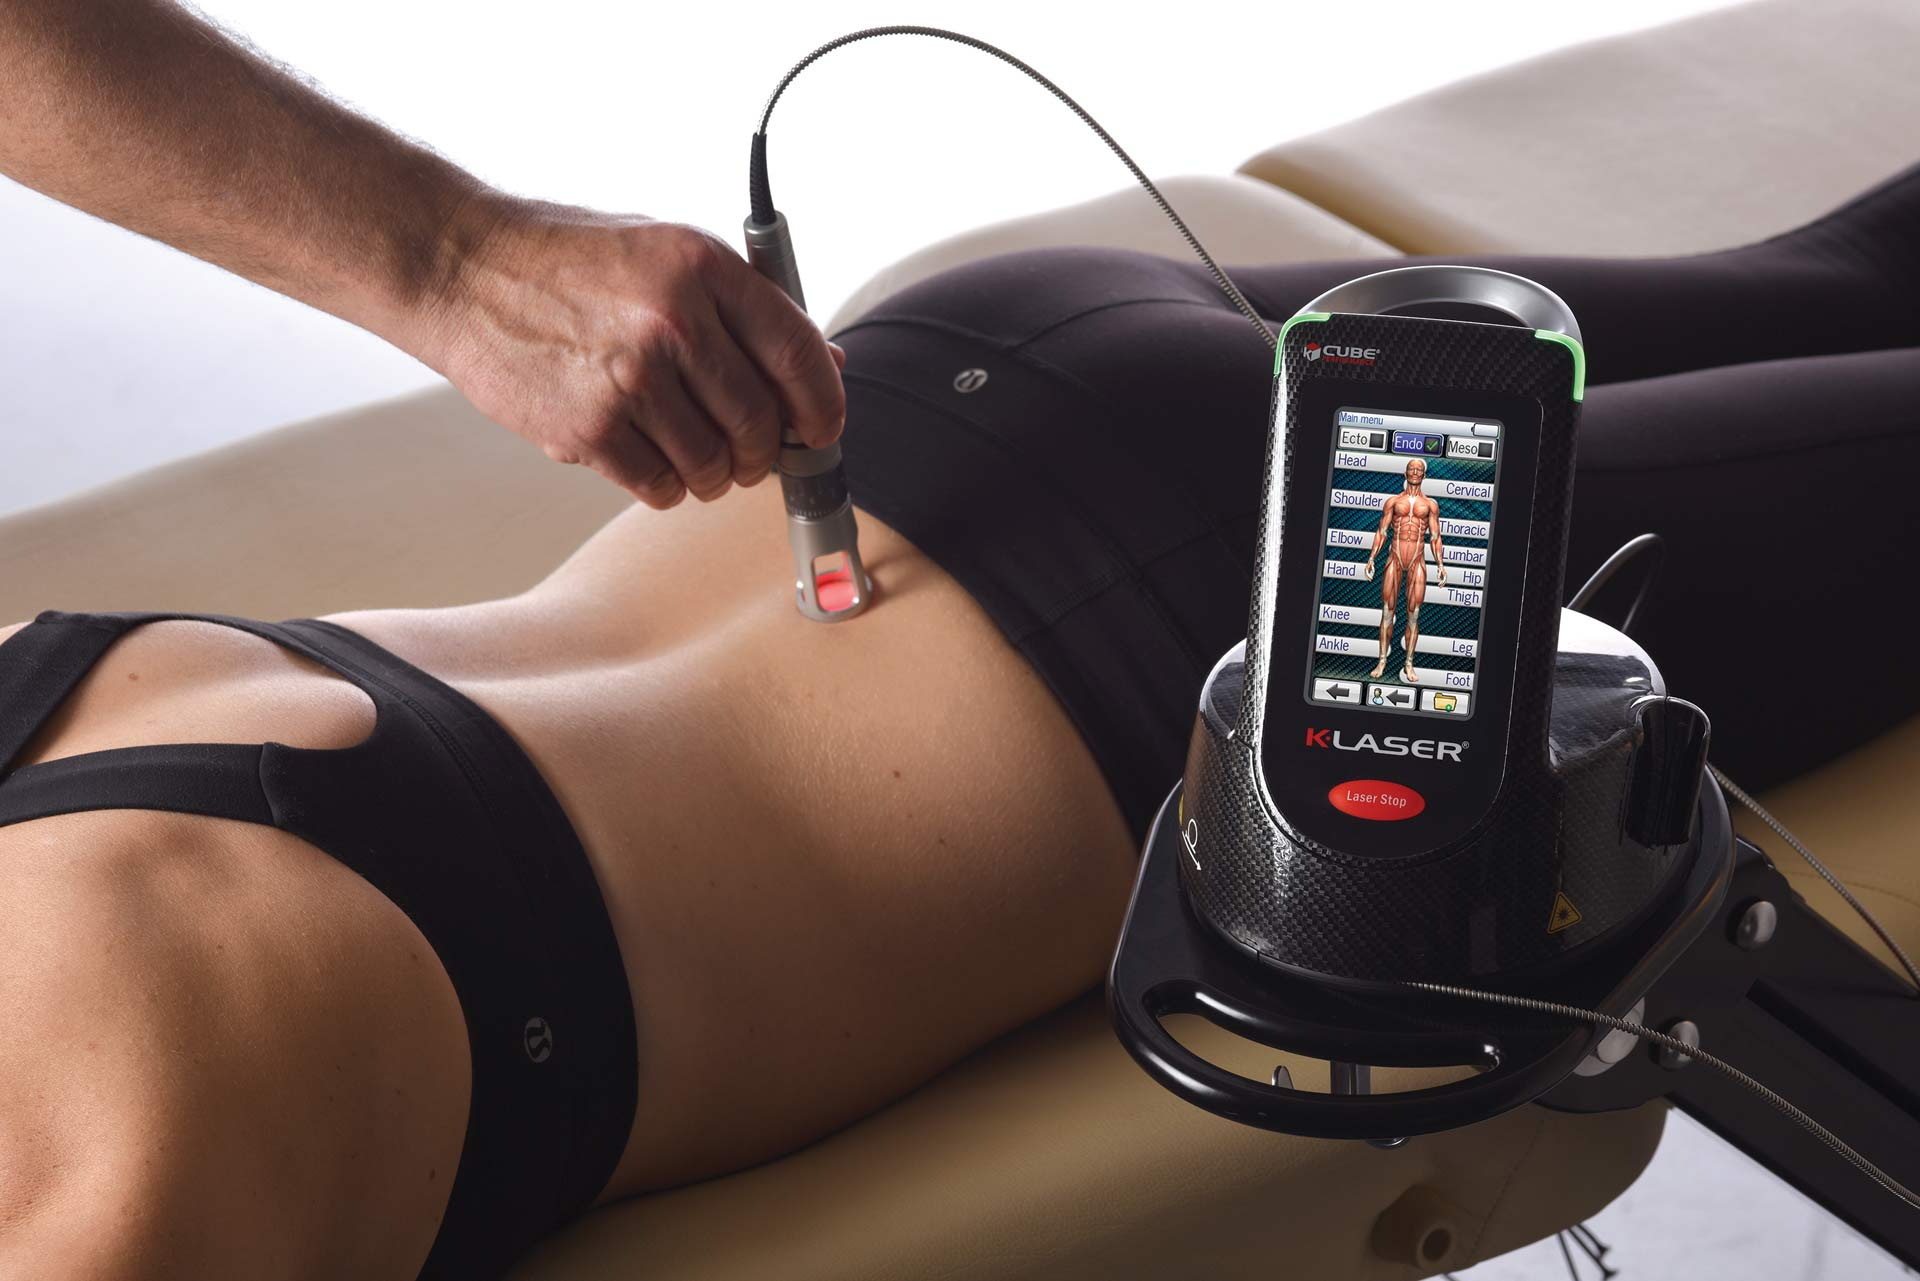 Class 4 Laser Therapy at Rose City Wellness